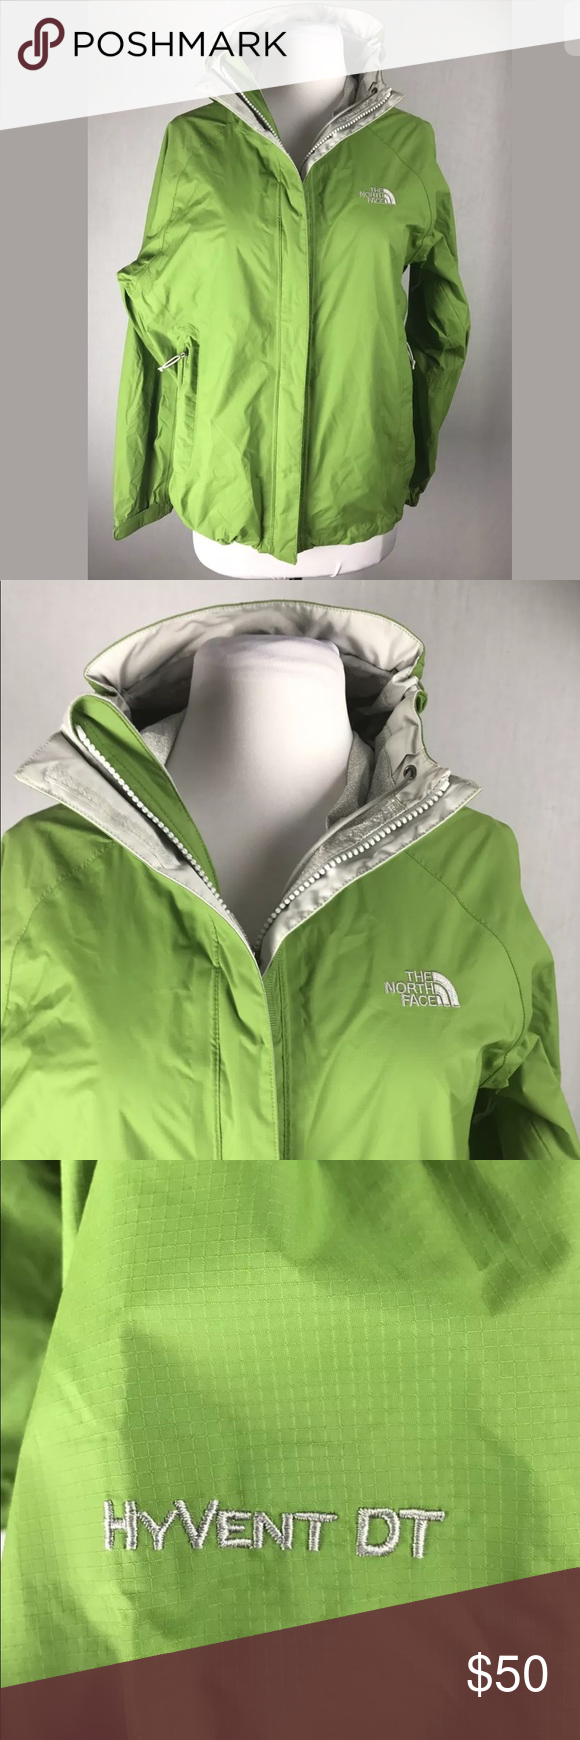 The North Face Hyvent Dt Windbreaker Jacket Windbreaker Jacket Windbreaker Jackets [ 1740 x 580 Pixel ]